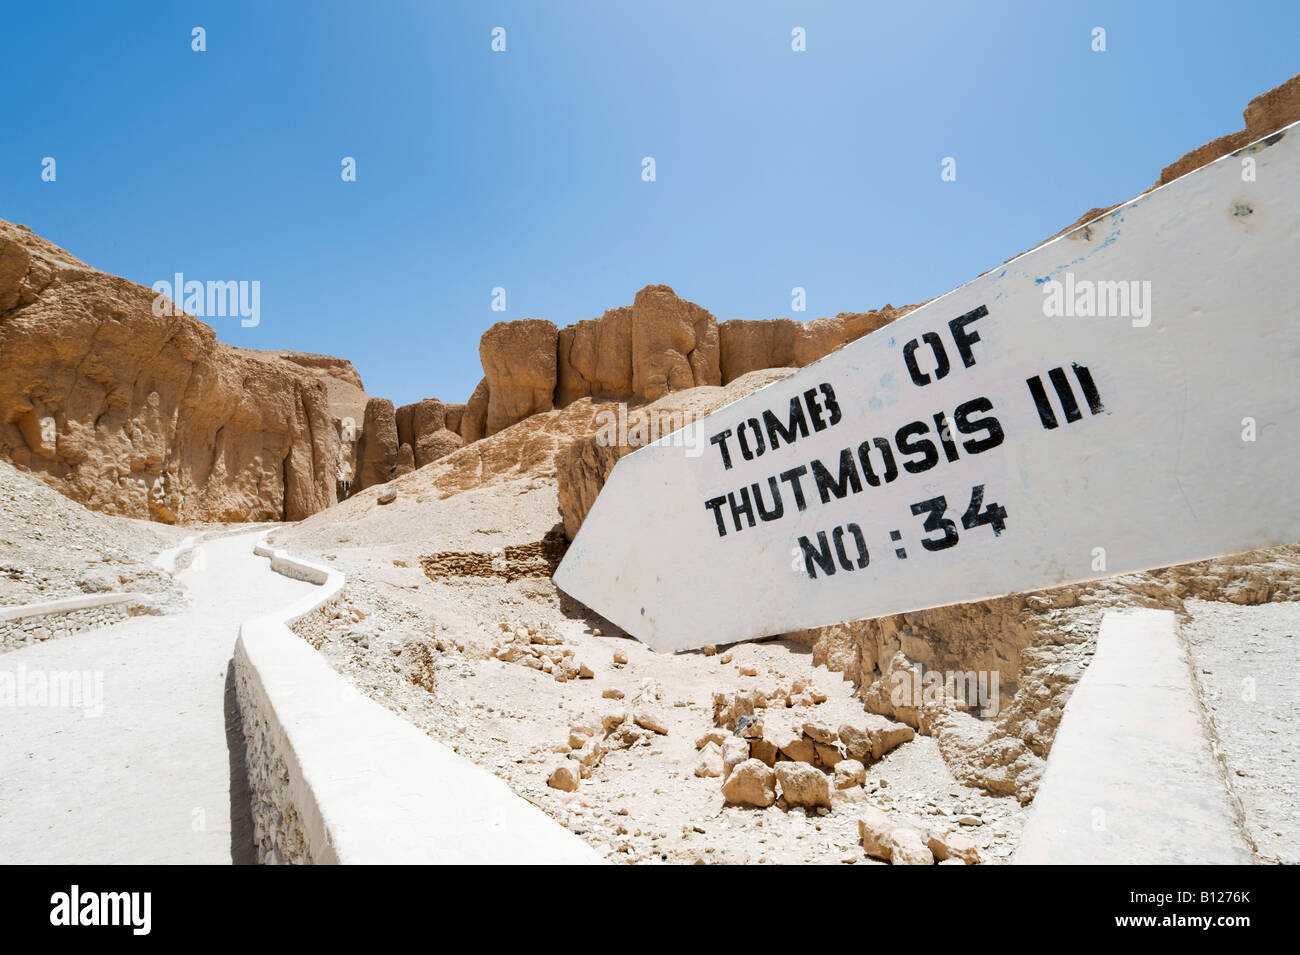 Sign for the Tomb of Thutmosis III, Valley of the Kings, West Bank, Luxor, Nile Valley, Egypt - Stock Image